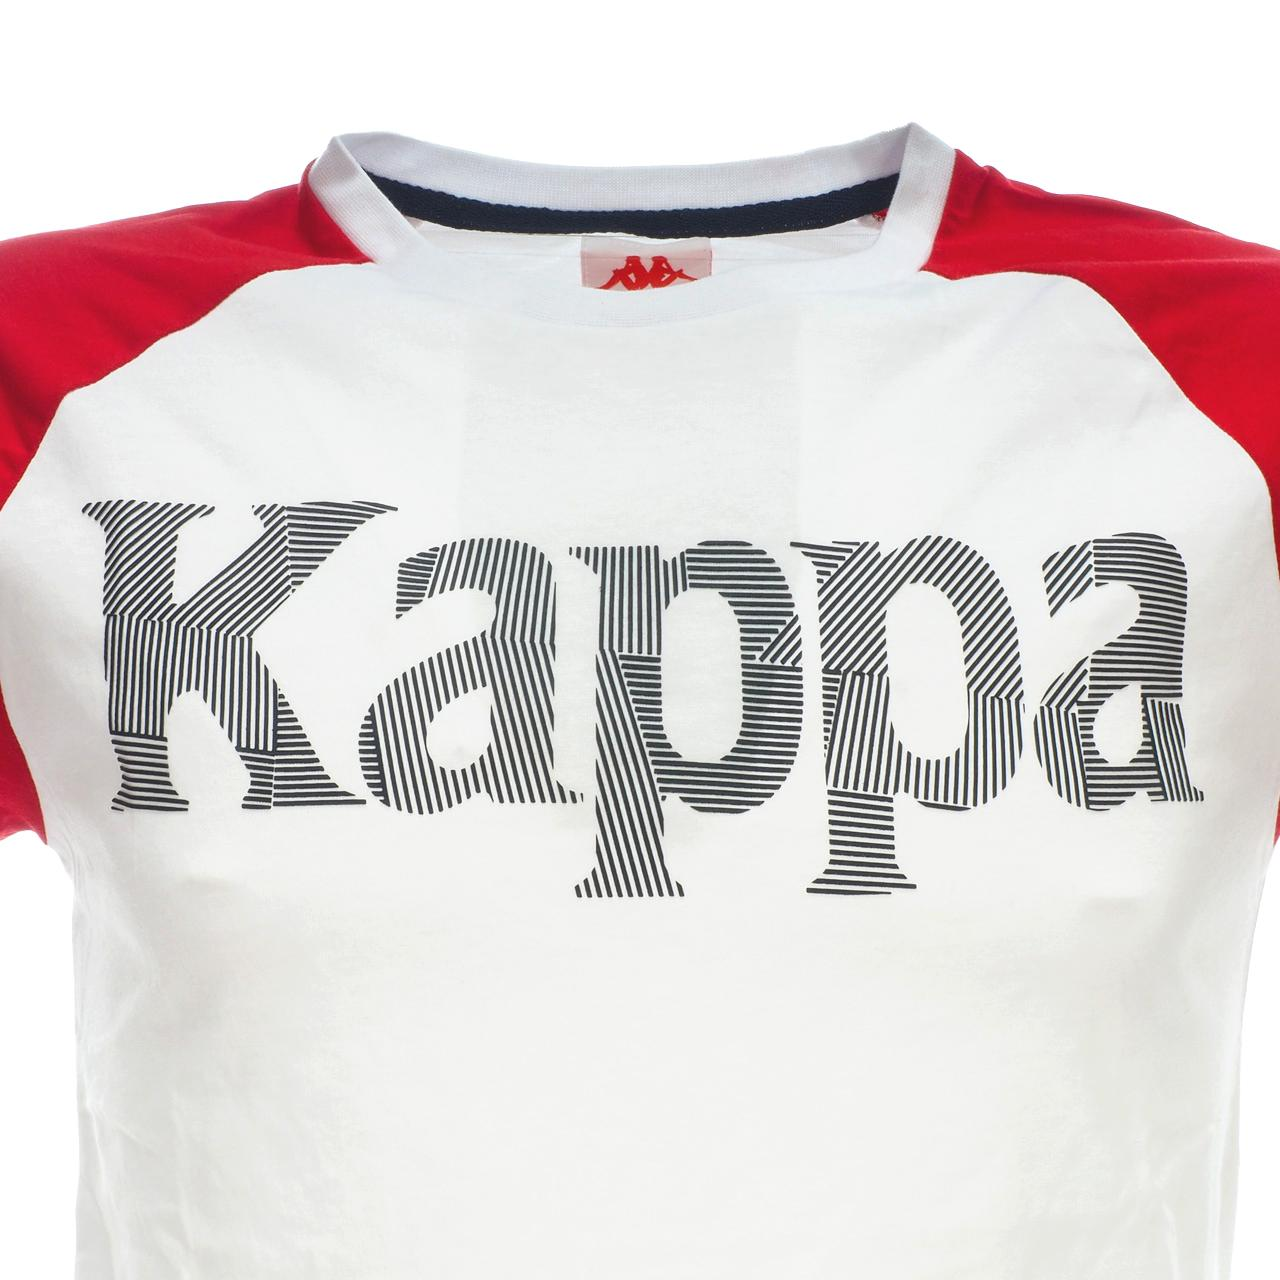 Short-Sleeve-T-Shirt-Kappa-Irmiou-Red-White-Navy-White-46521-New thumbnail 2